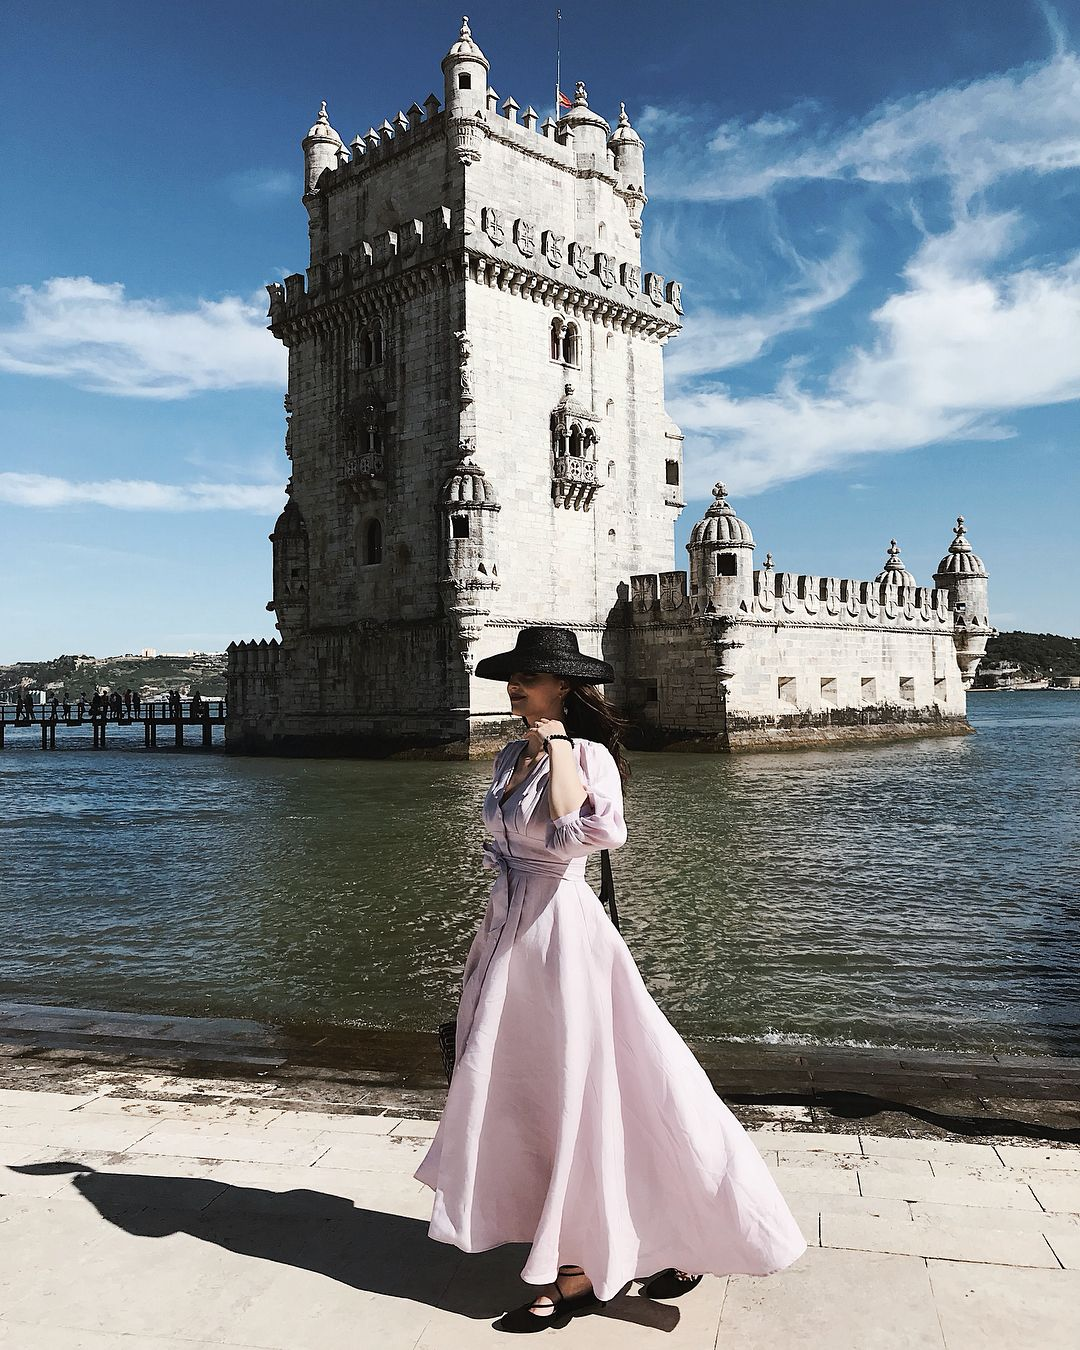 Windy Day Visit To Torre De Belem Wearing Behida S First Clothing Design Piec One Clothing Clothes Design Beautiful